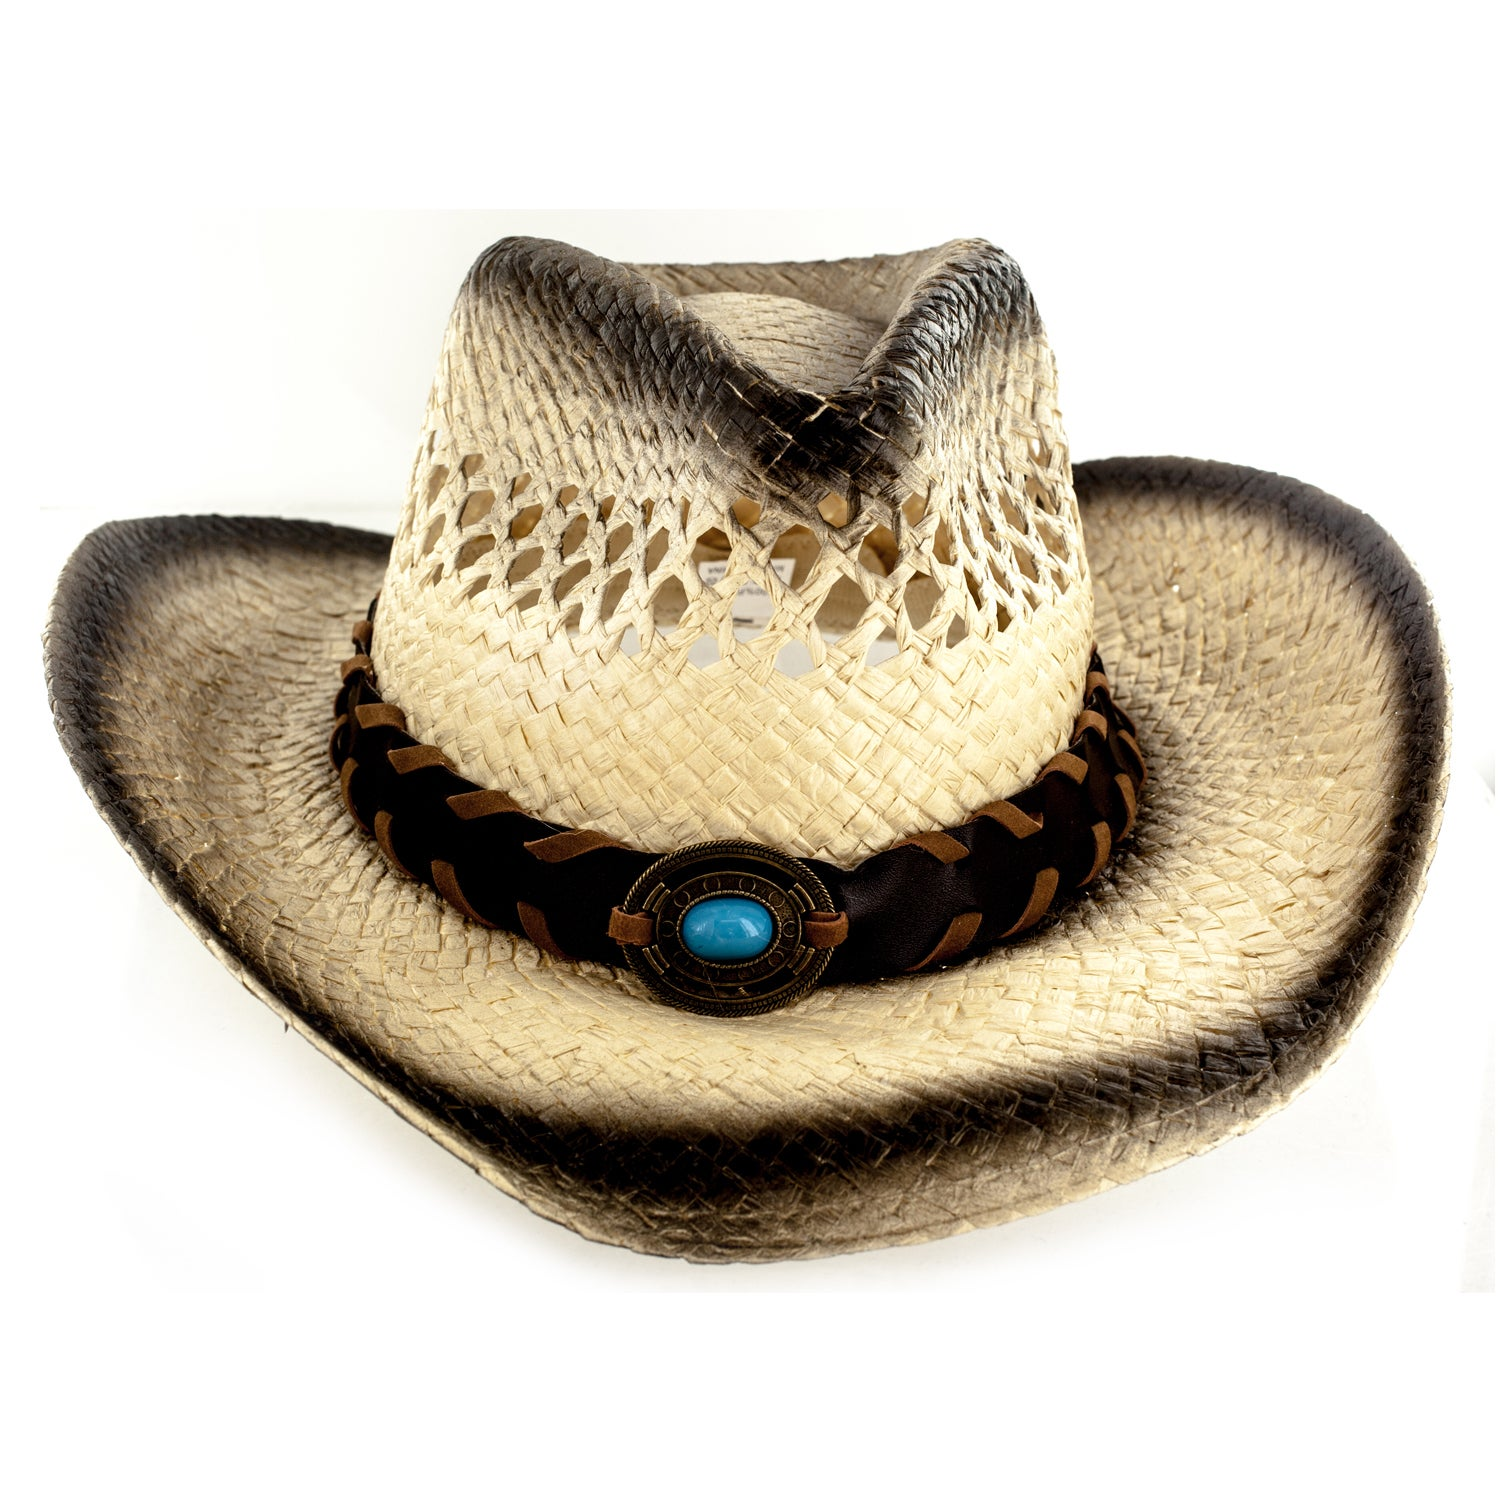 f65bf32fa1b Details about Faddism Tan Cotton Polyester Straw Custom-made Cowboy Hat  with Leather Trim and